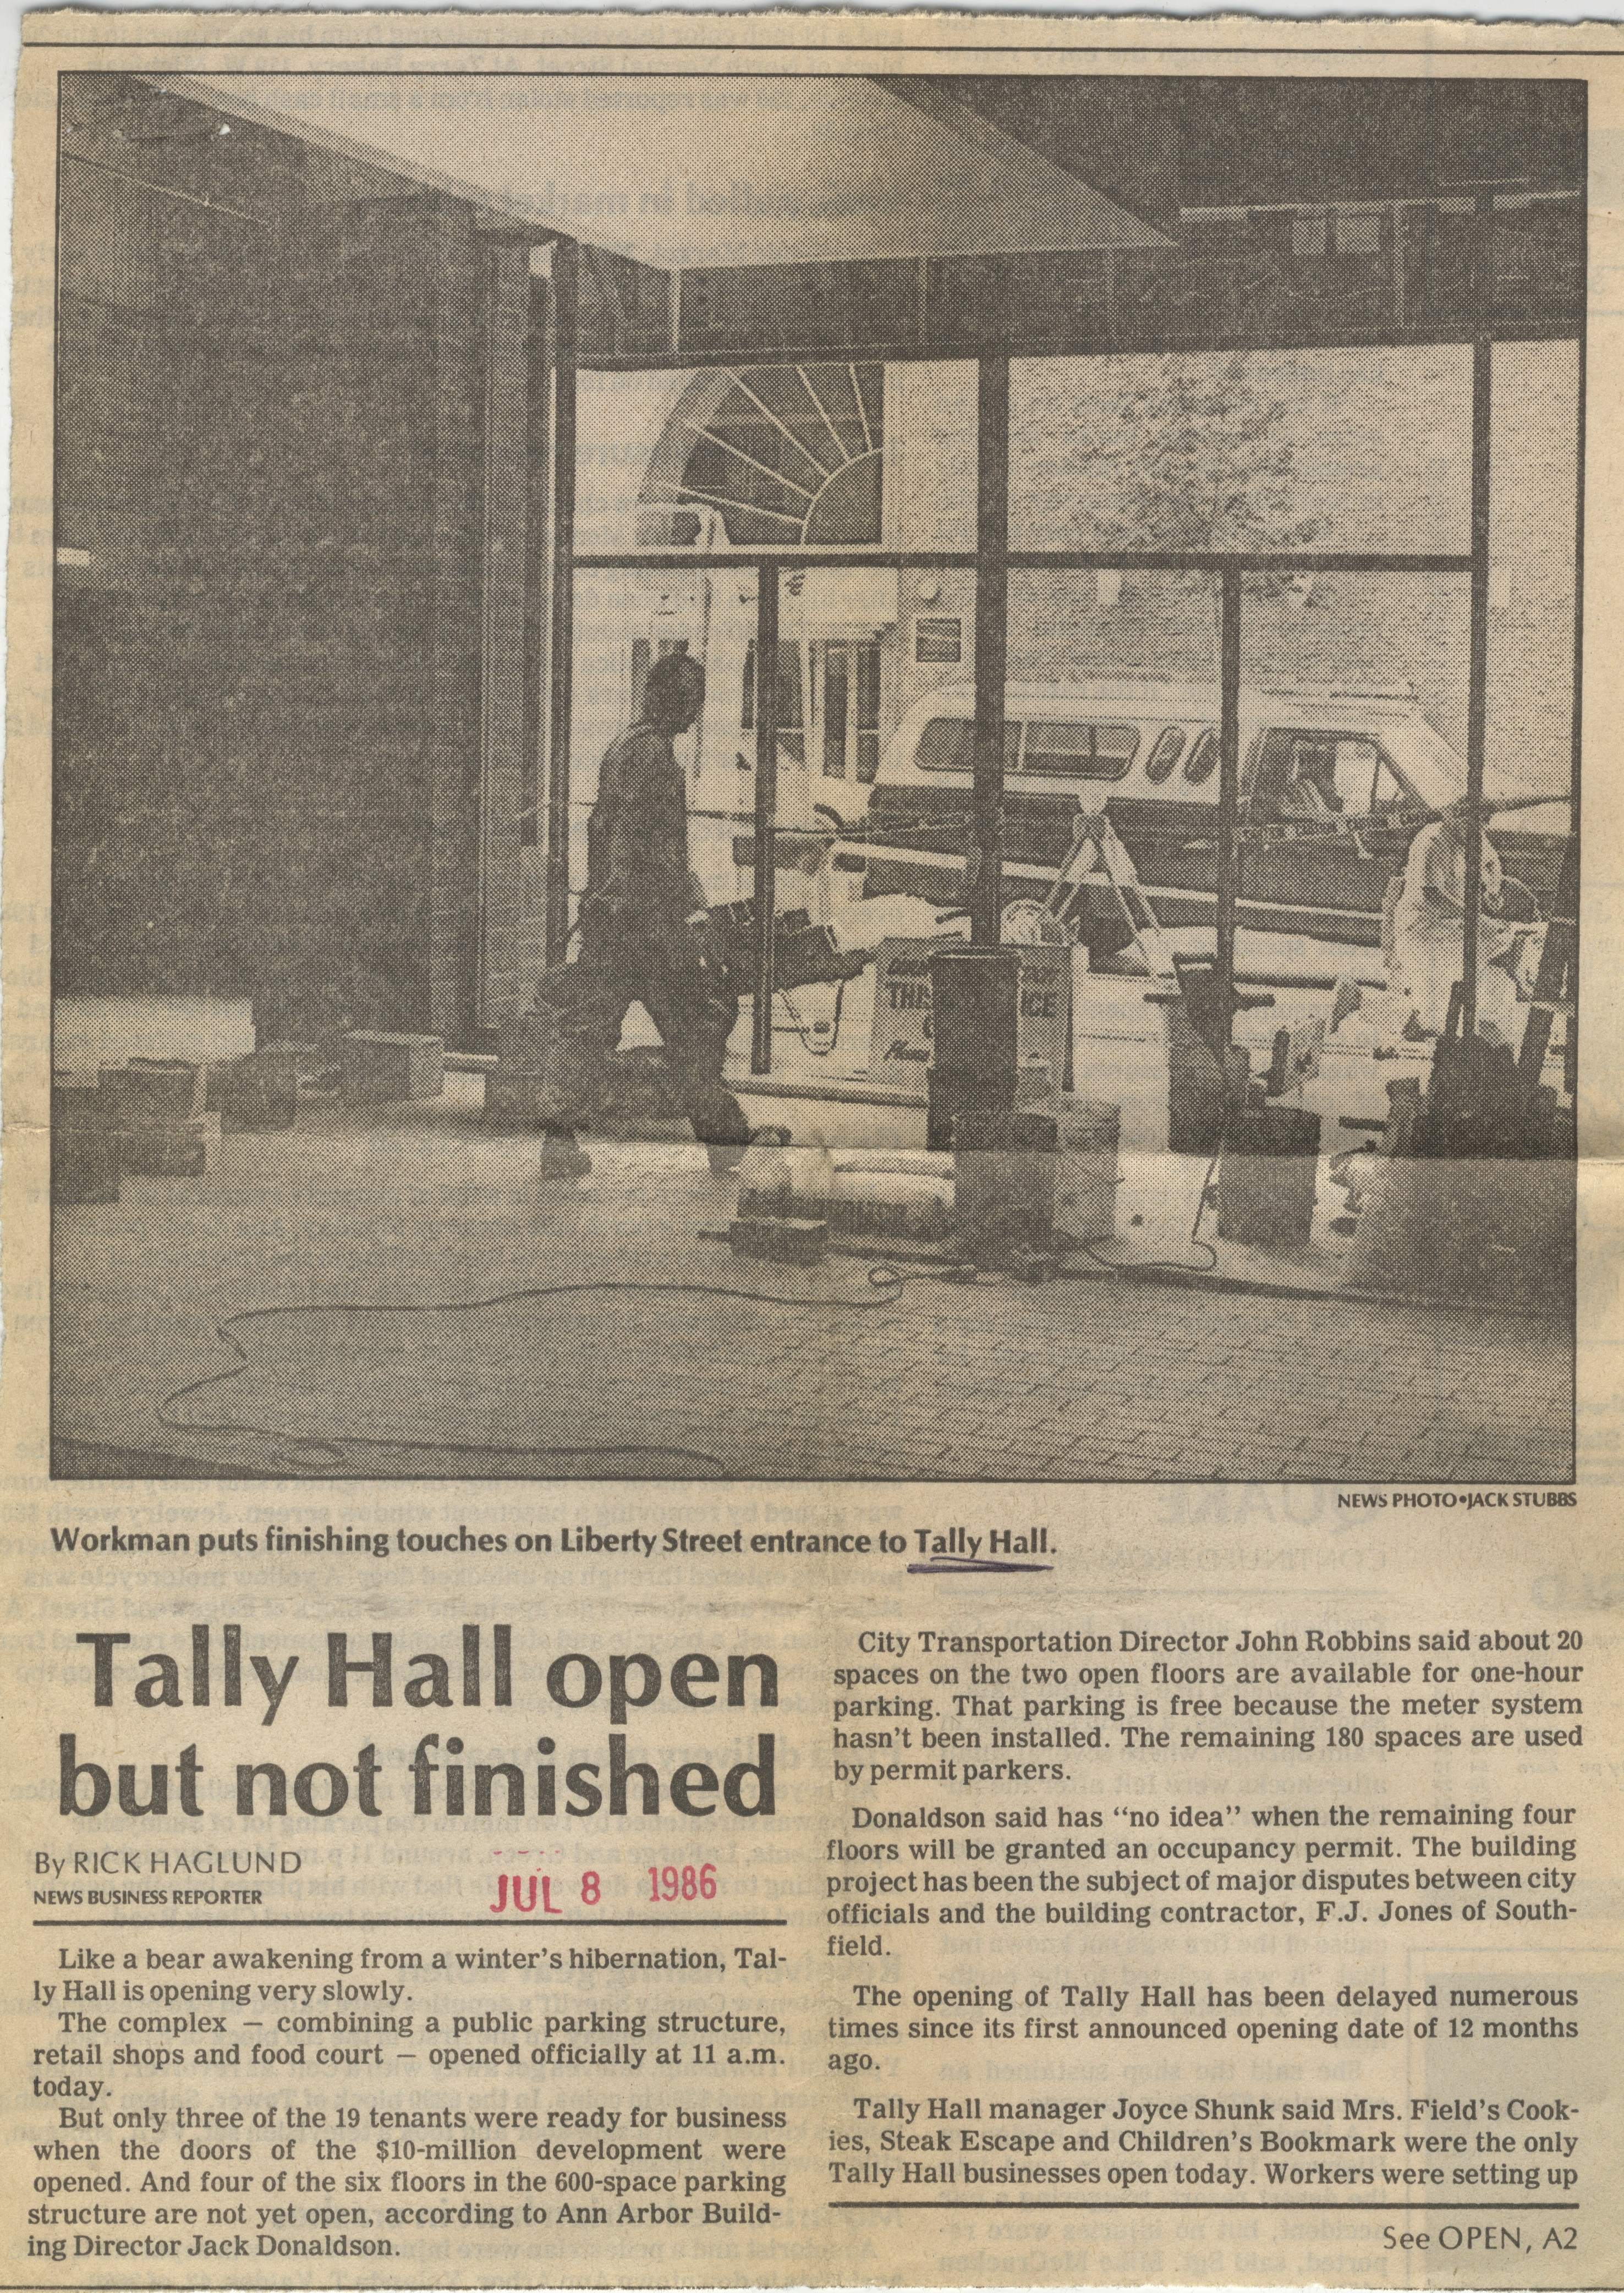 Tally Hall Open But Not Finished image